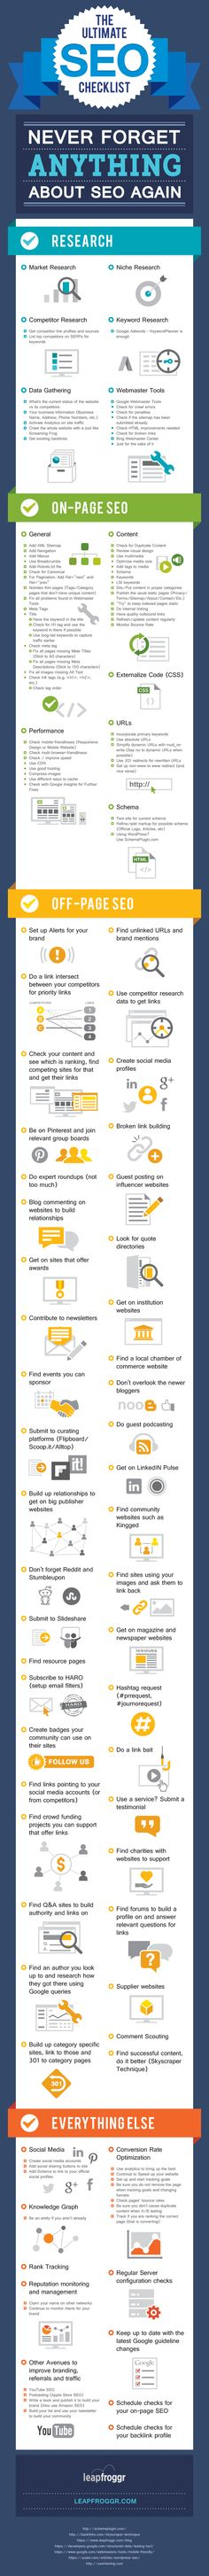 infographie check list SEO